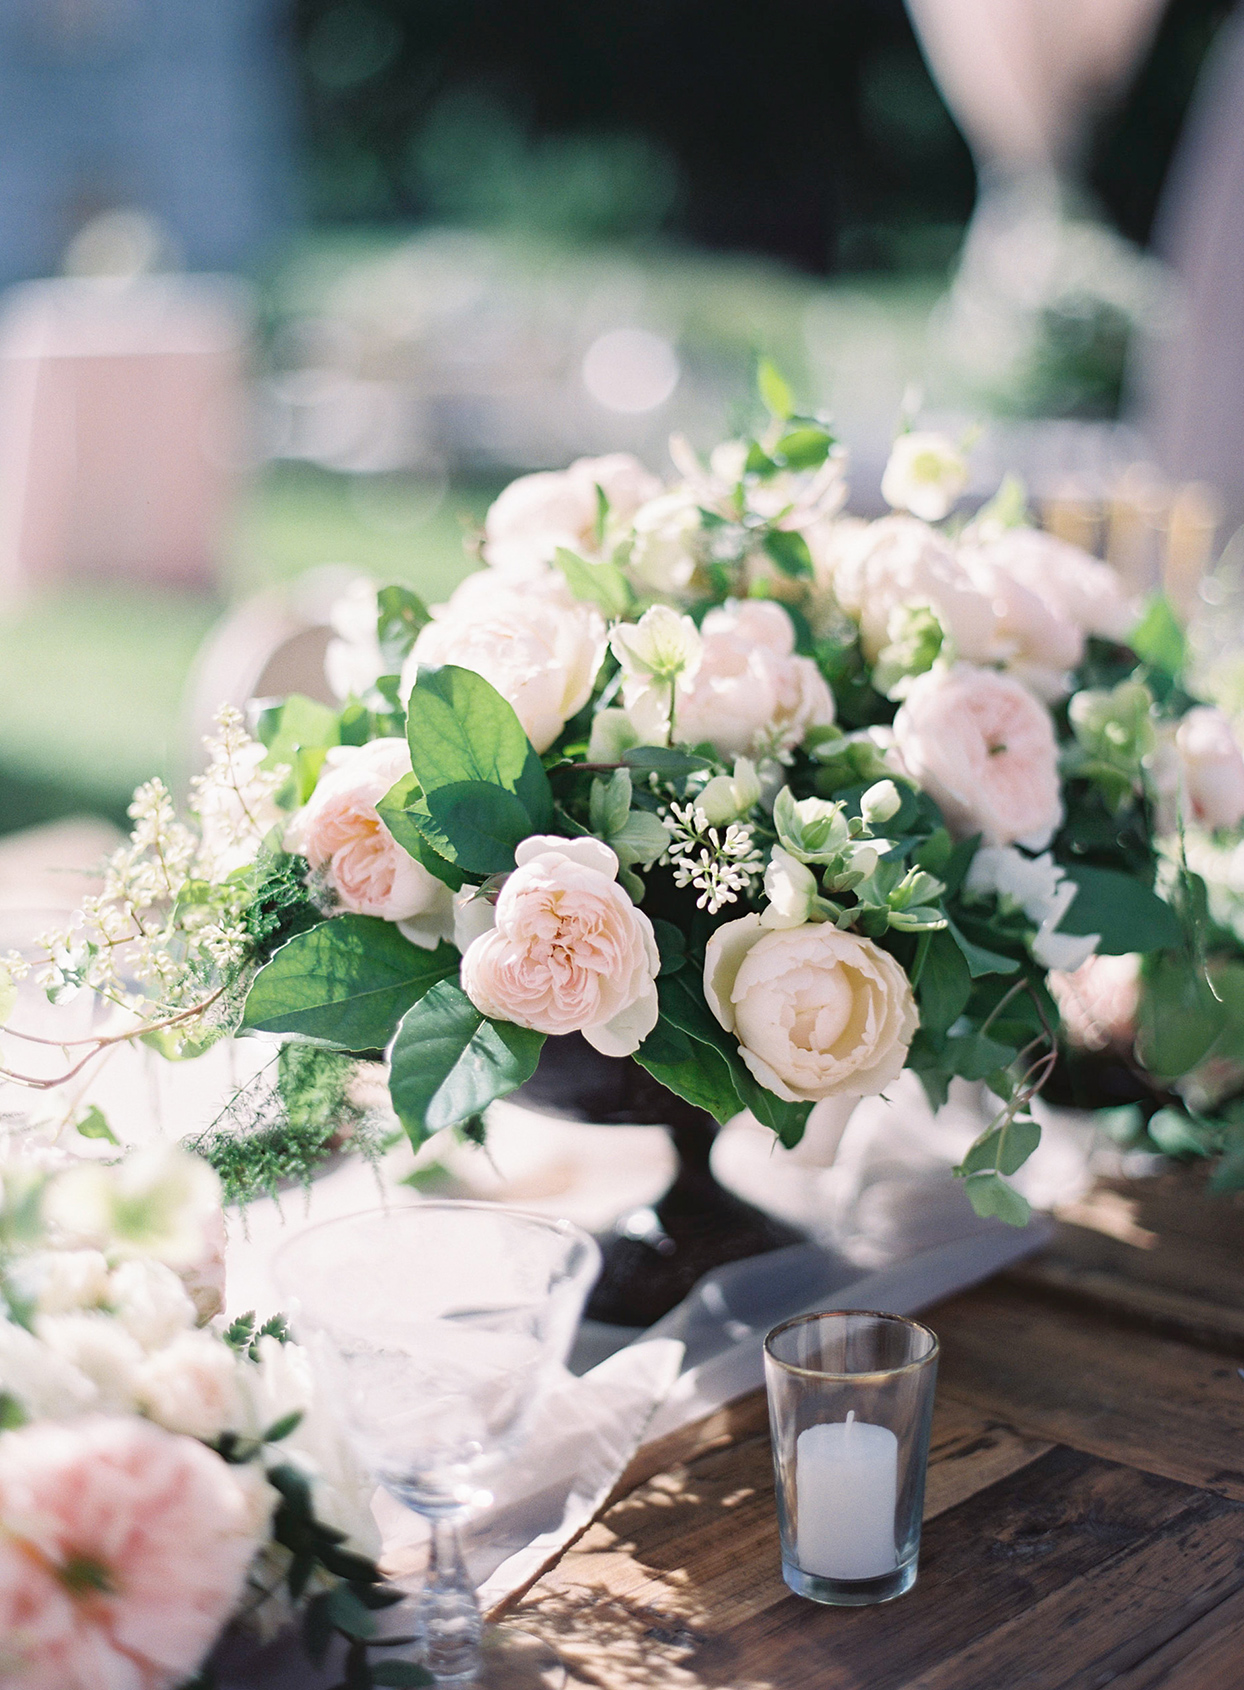 Centerpieces in White